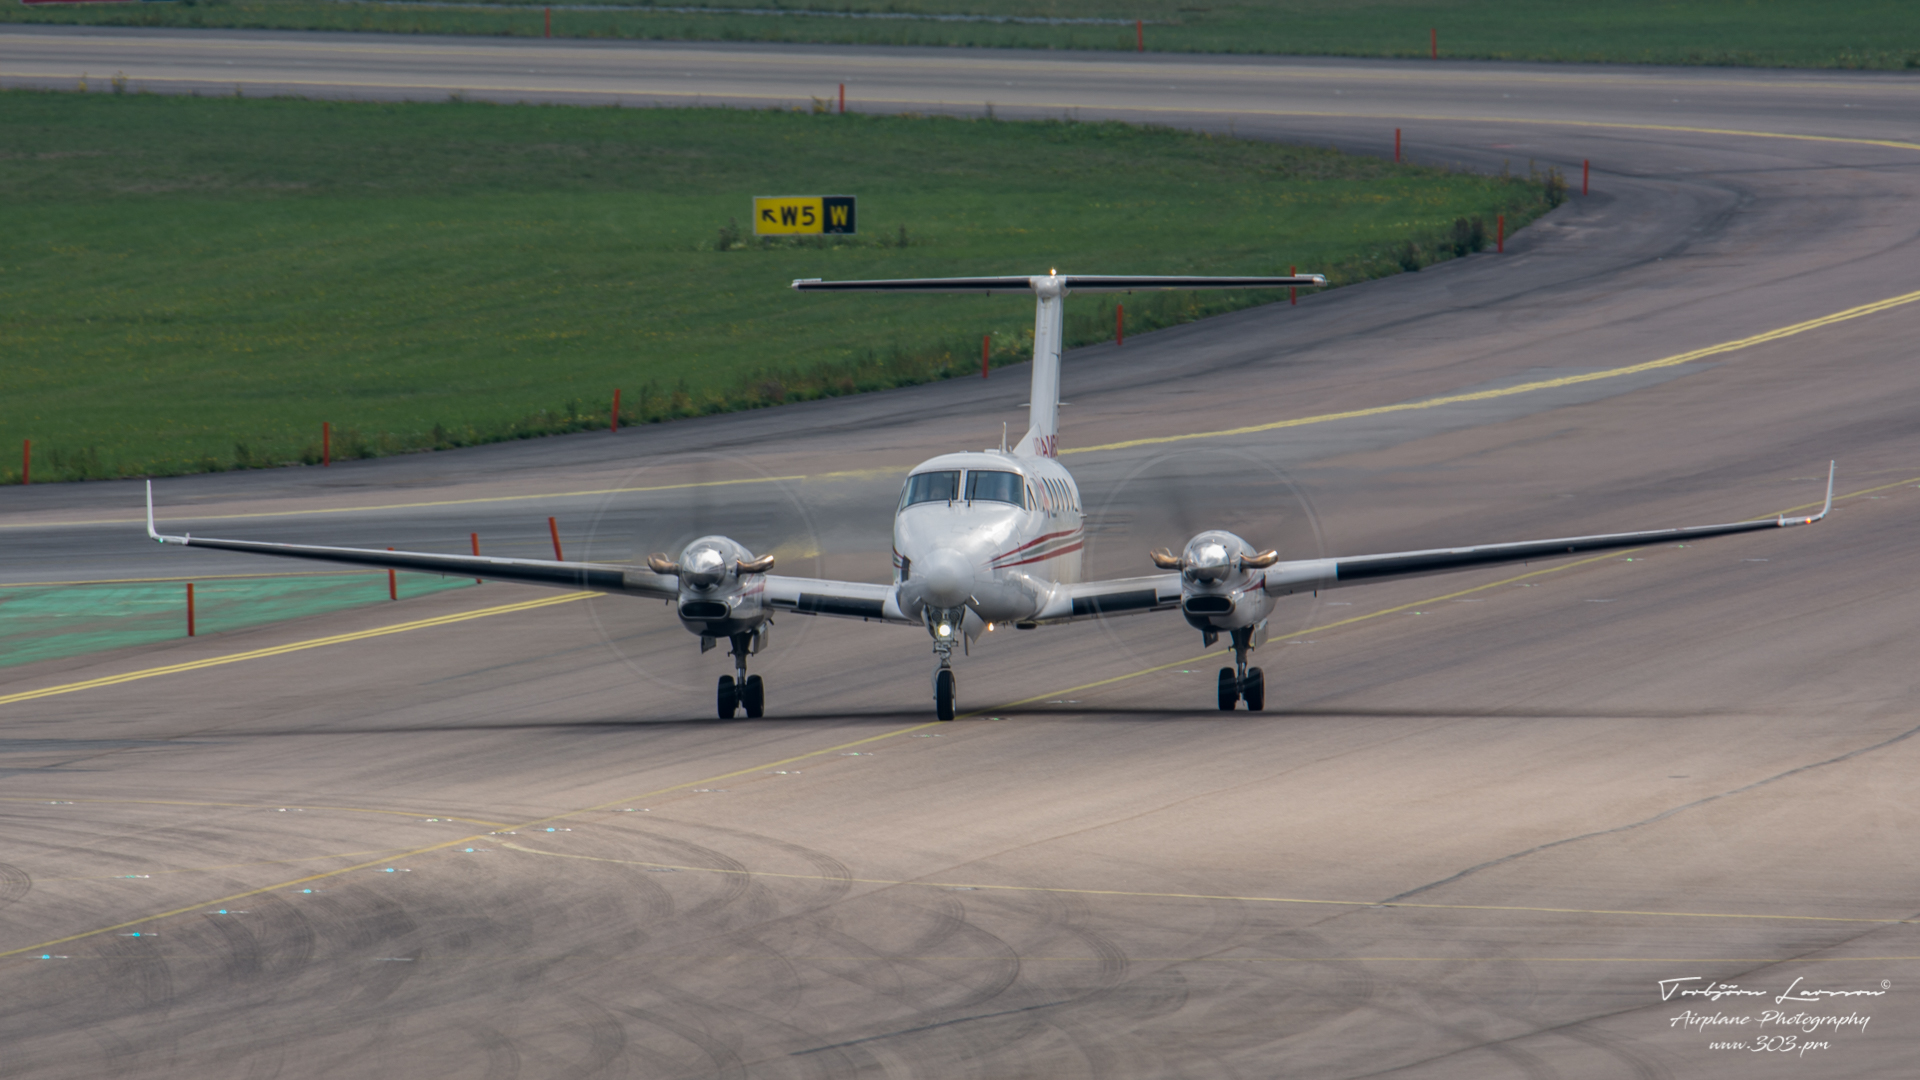 Beech King Air 300 - Air Ambulance - SE-KOL - TBE_2005